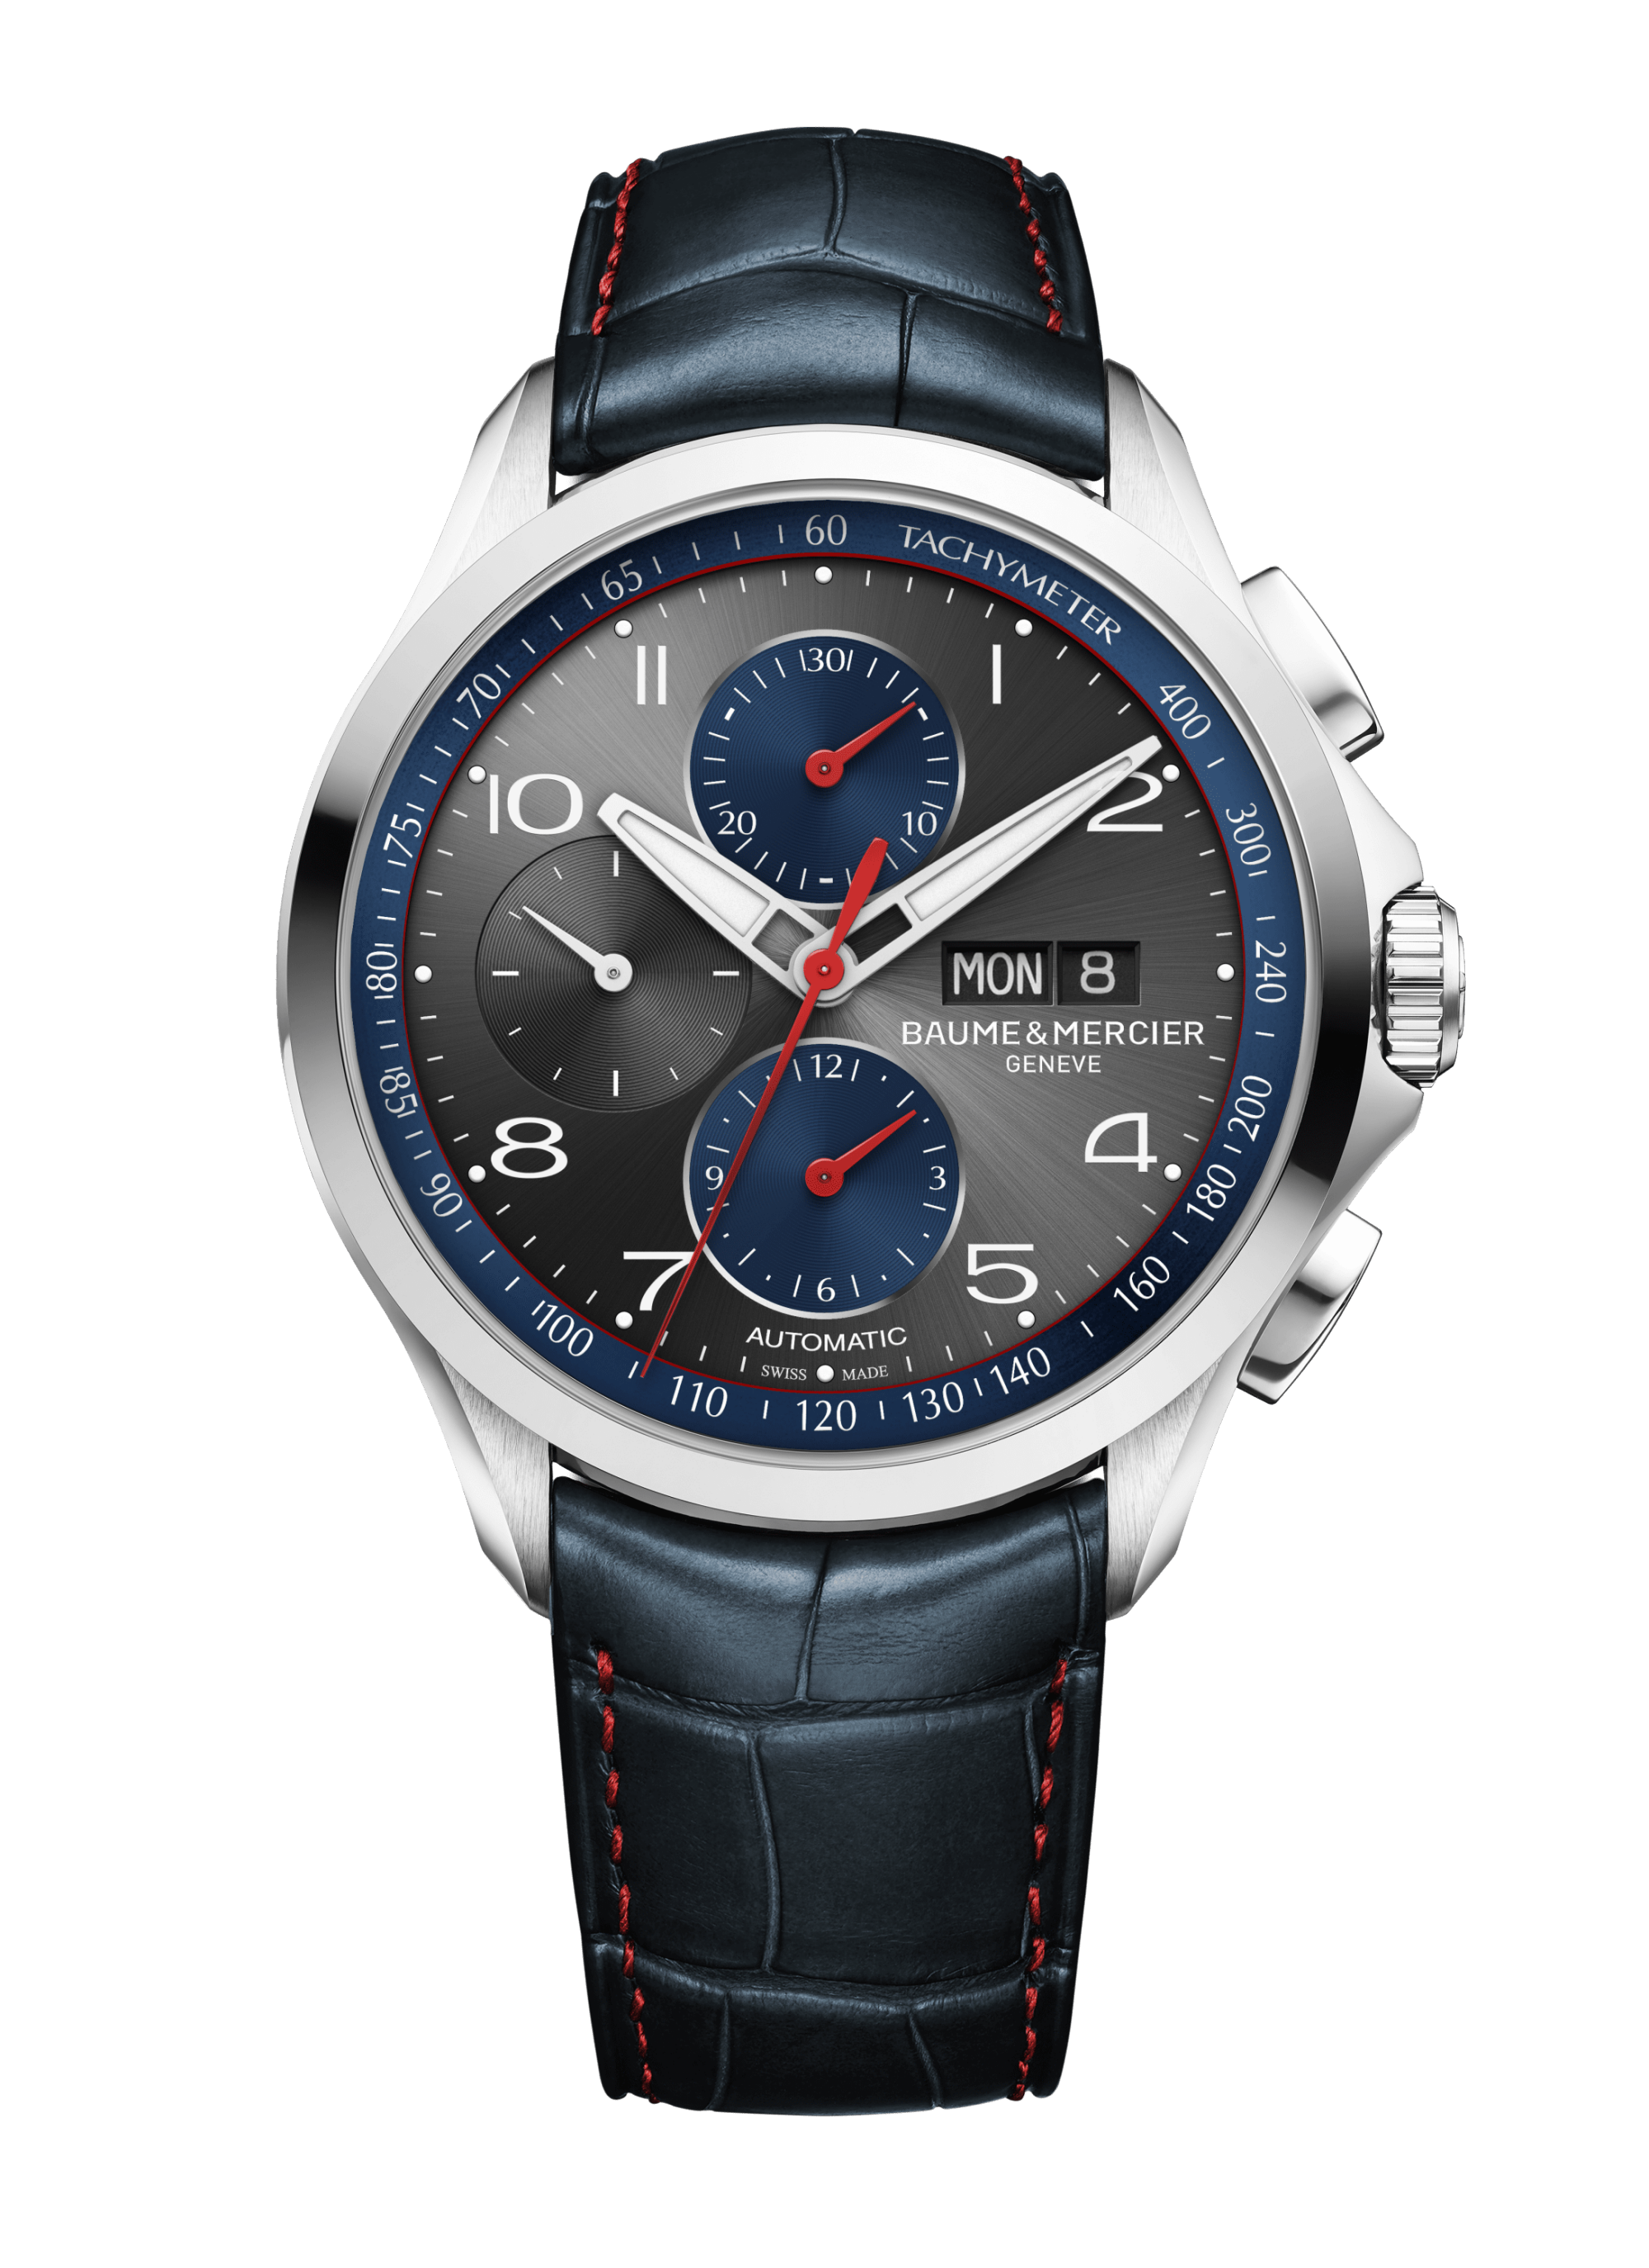 名士表(Baume & Mercier)Clifton Club 10370 男士腕表 null null